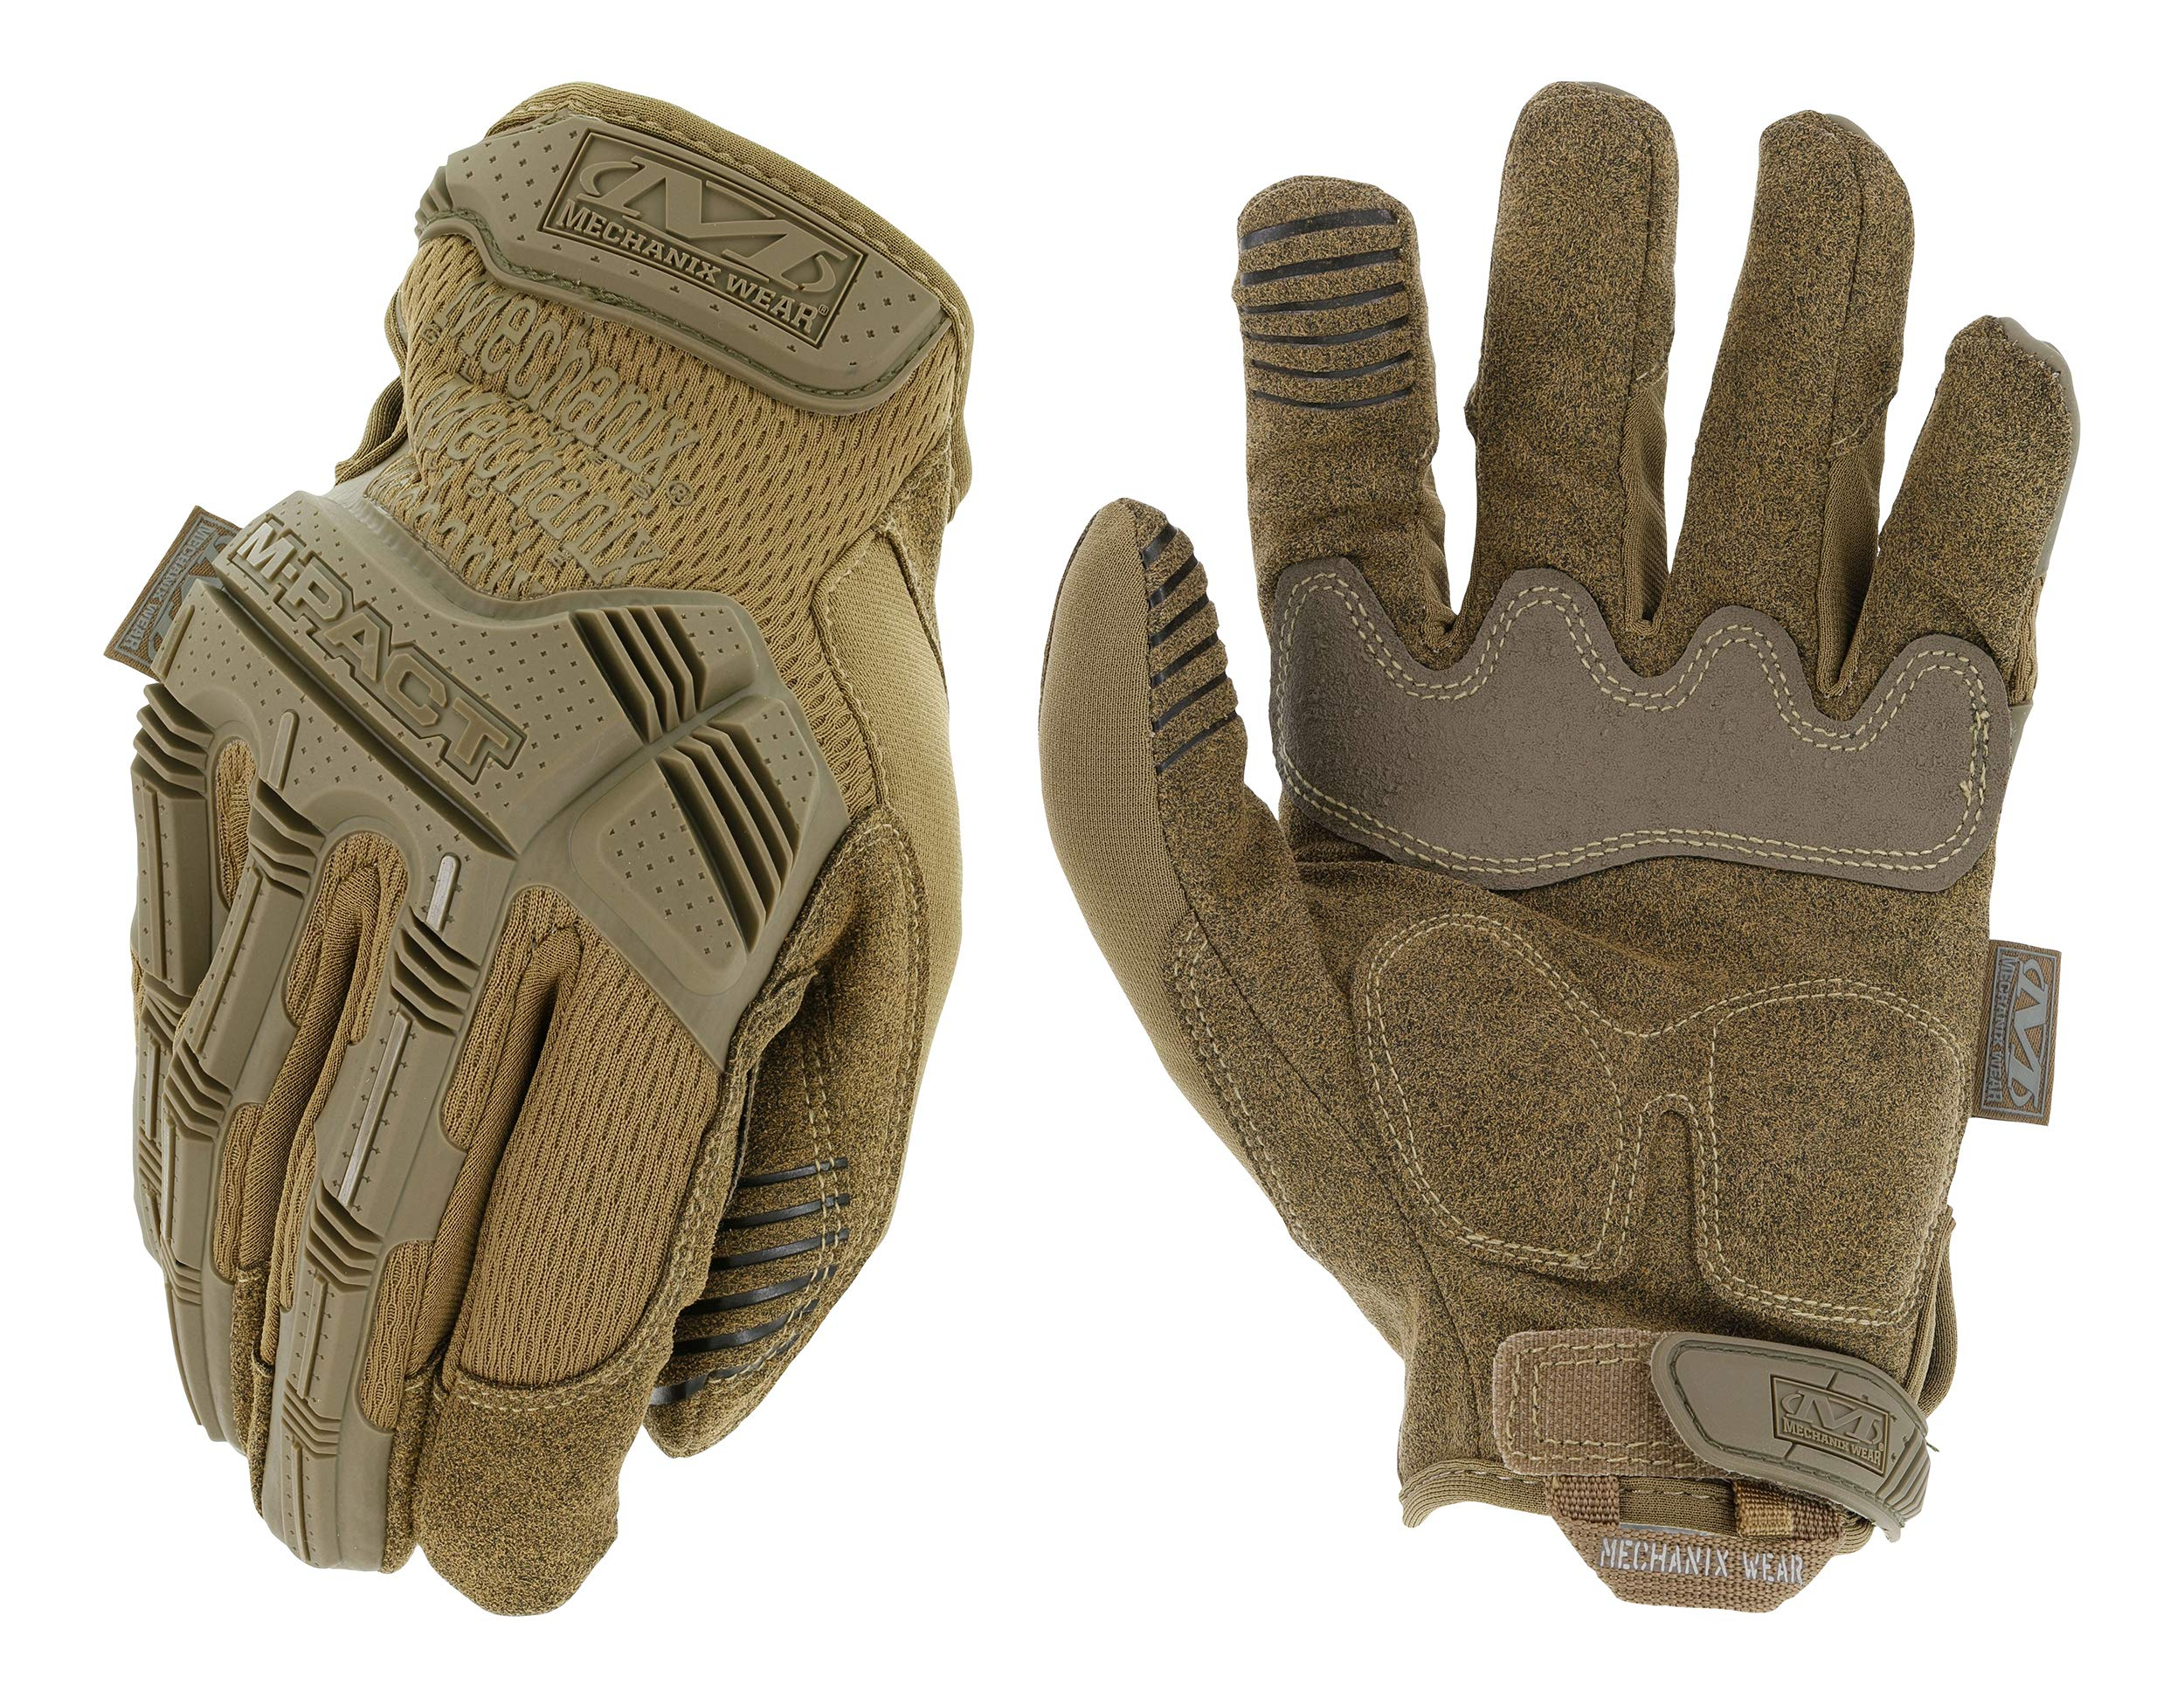 Mechanix Wear - M-Pact Coyote Tactical Gloves (Large, Brown) by Mechanix Wear